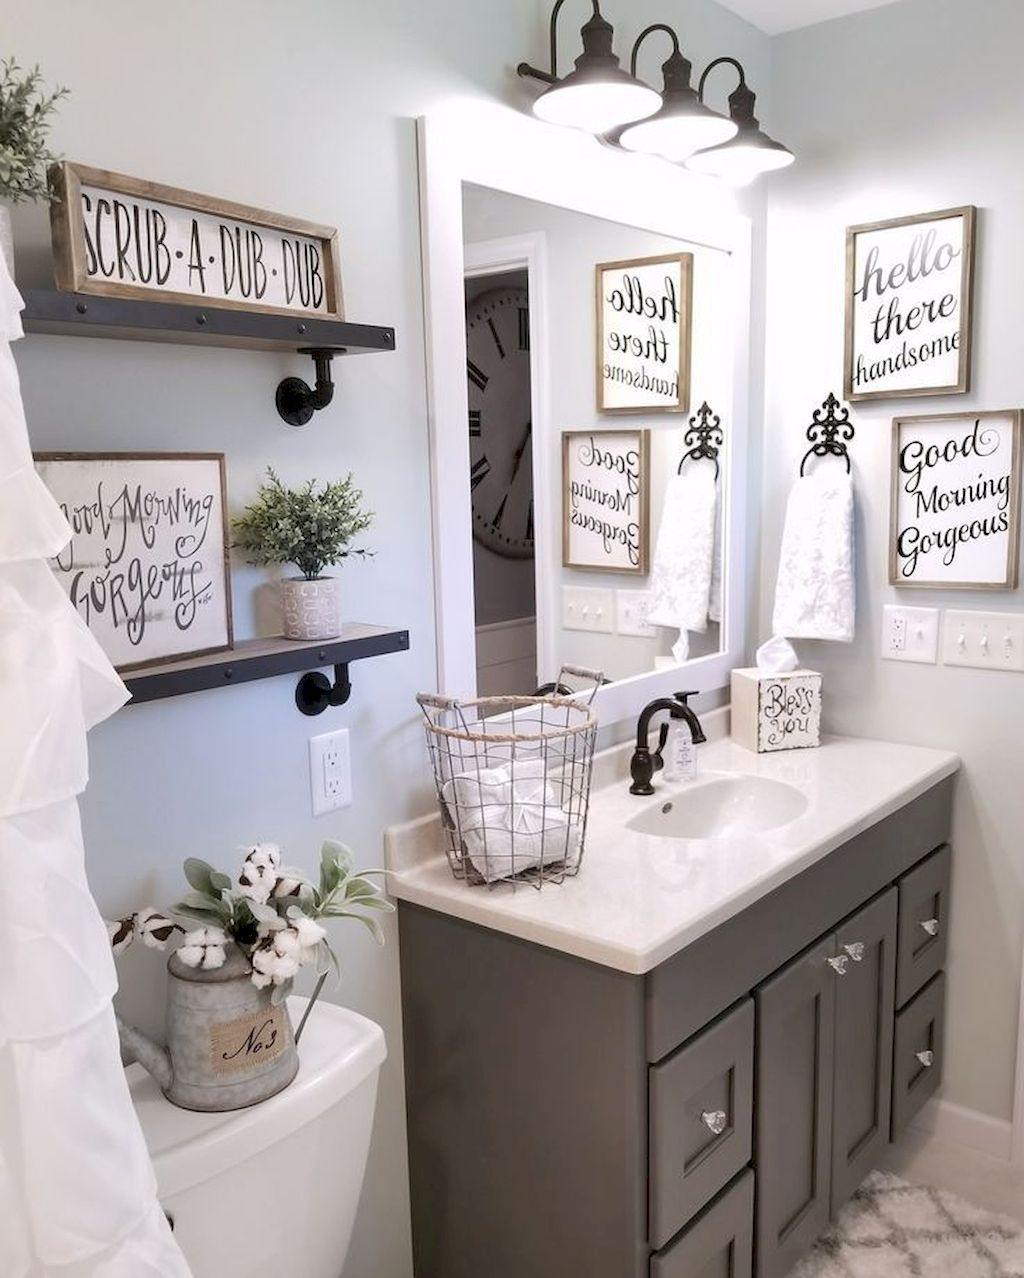 110 Spectacular Farmhouse Bathroom Decor Ideas | House, Future and Bath